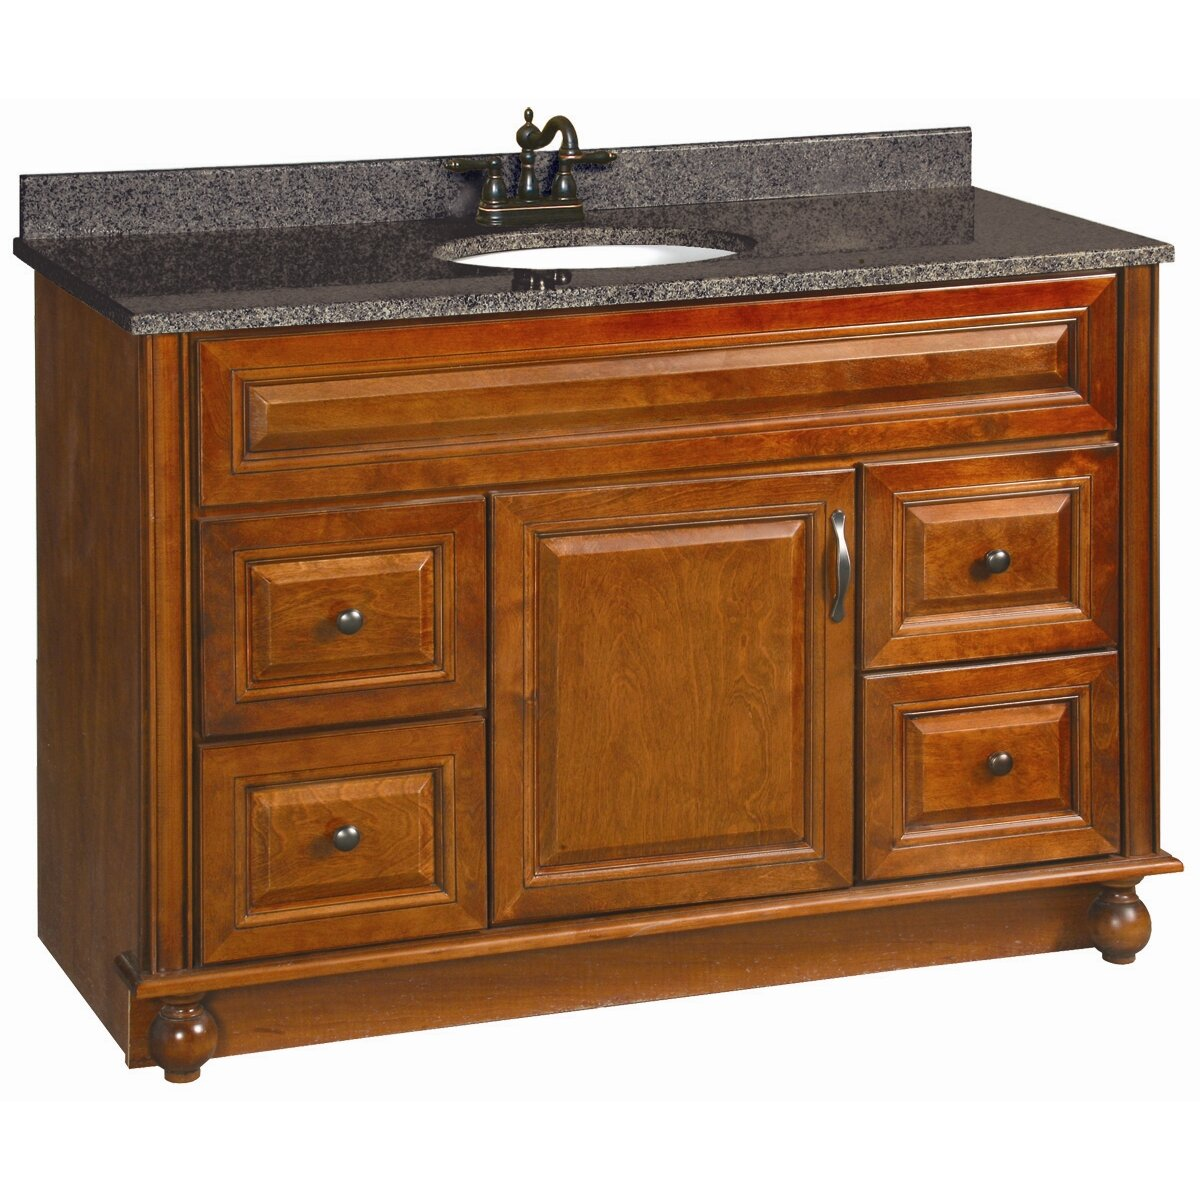 Design house montclair 48 single door cabinet vanity base - What is vanity in design this home ...